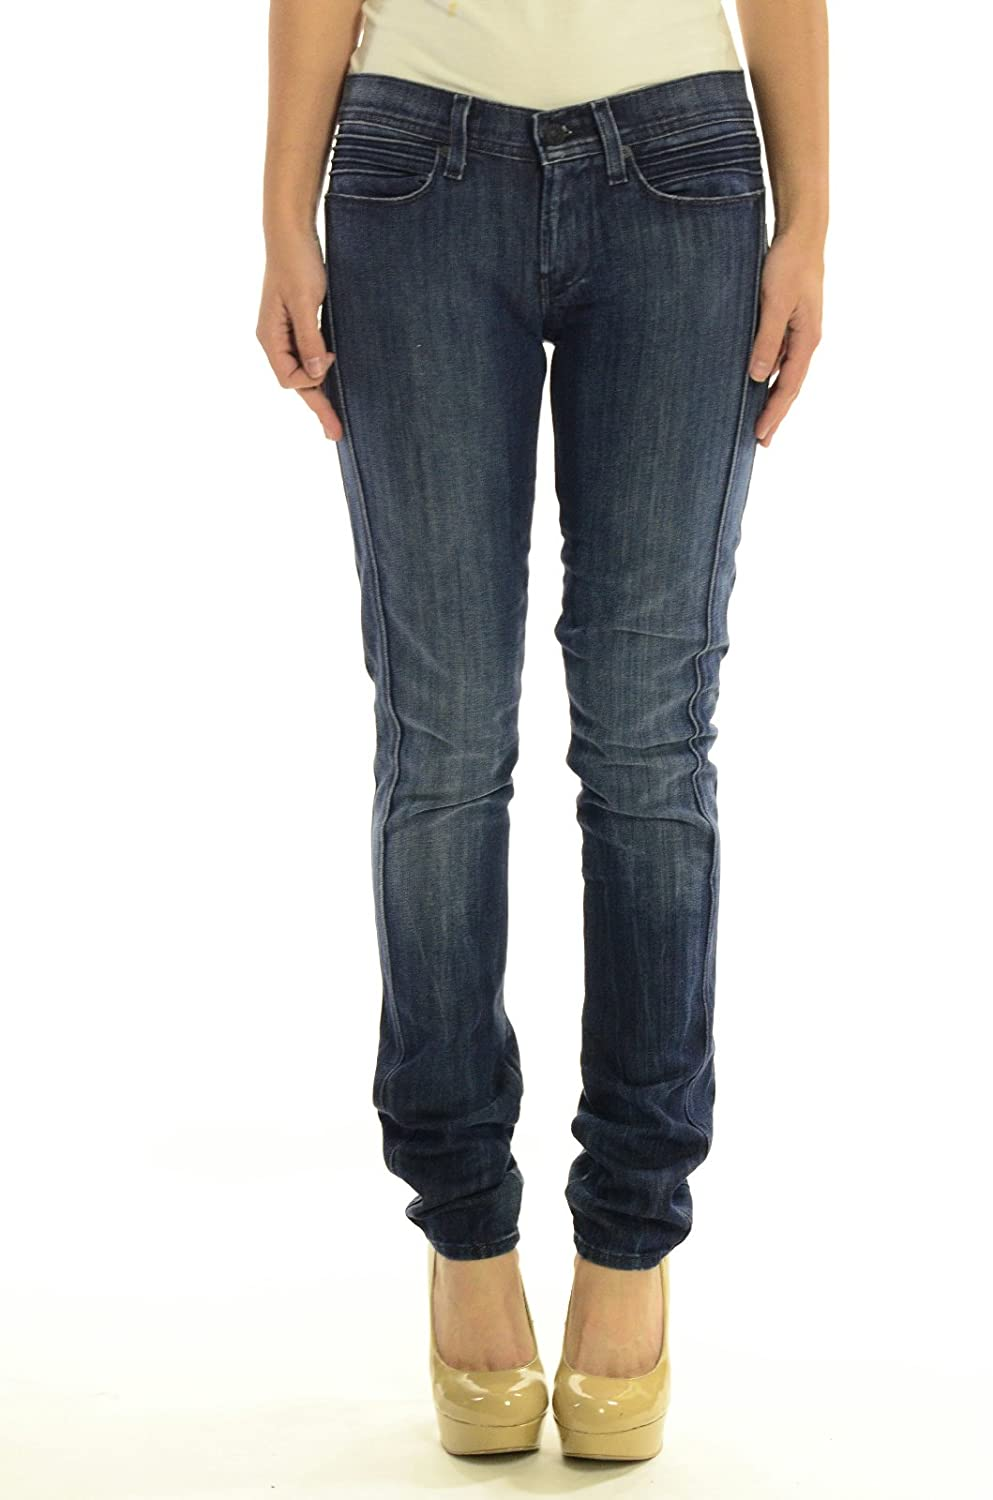 7 For All Mankind Women's Roxanne Skinny Jeans, Montclare Dark Wash, 26